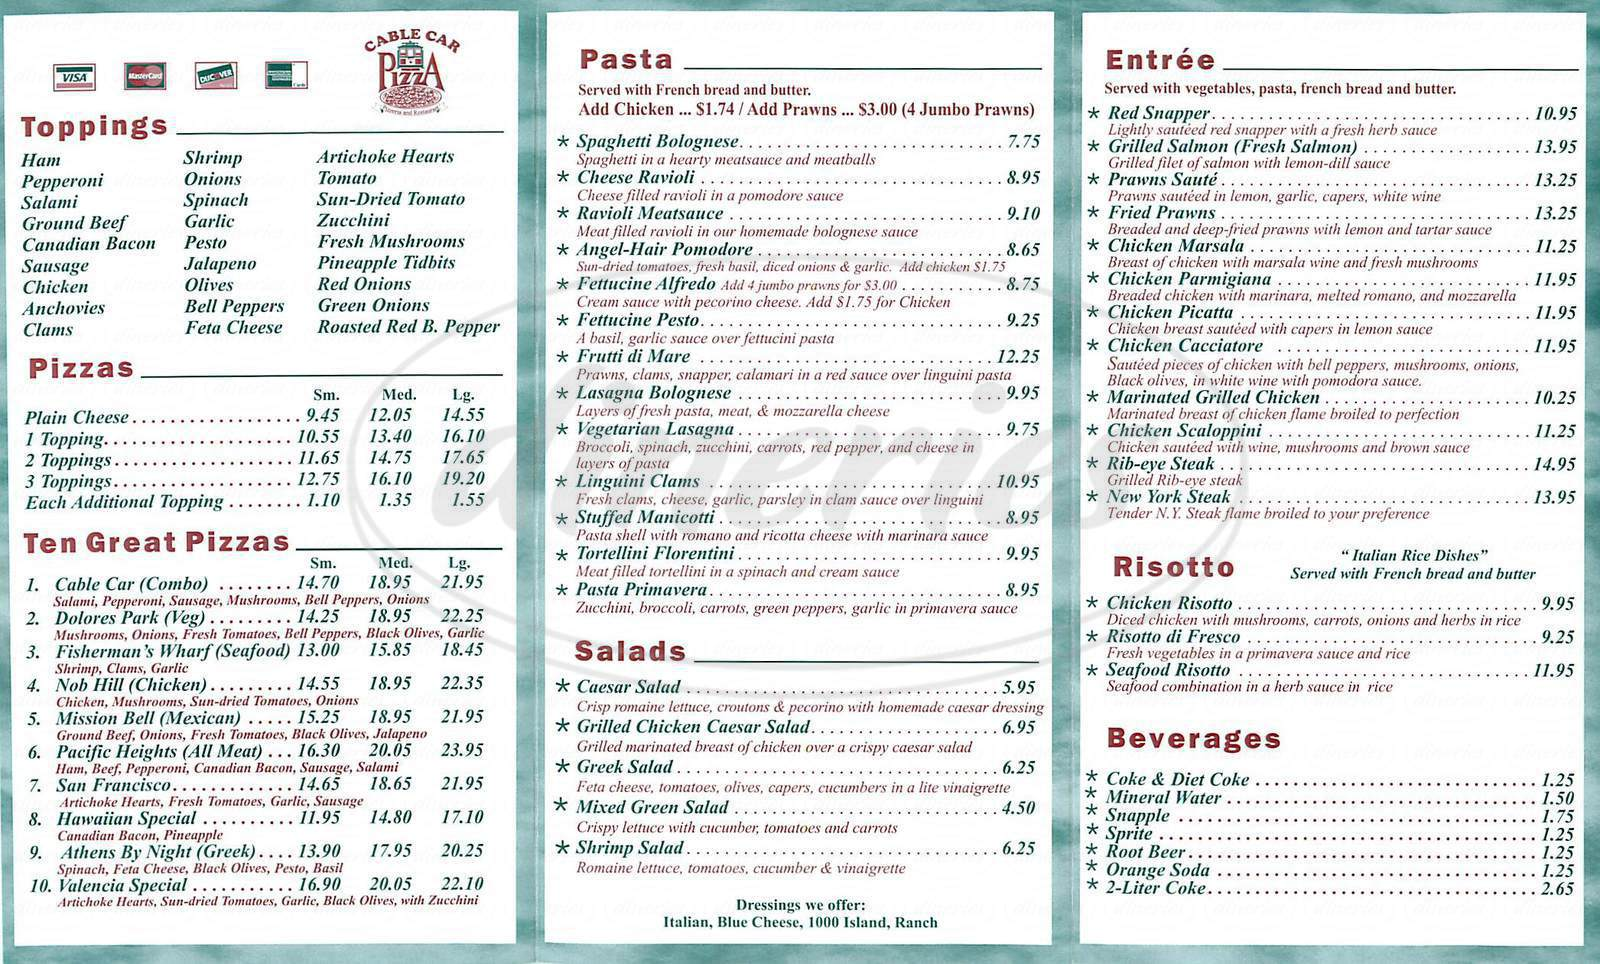 Big menu for Cable Car Pizza, San Francisco